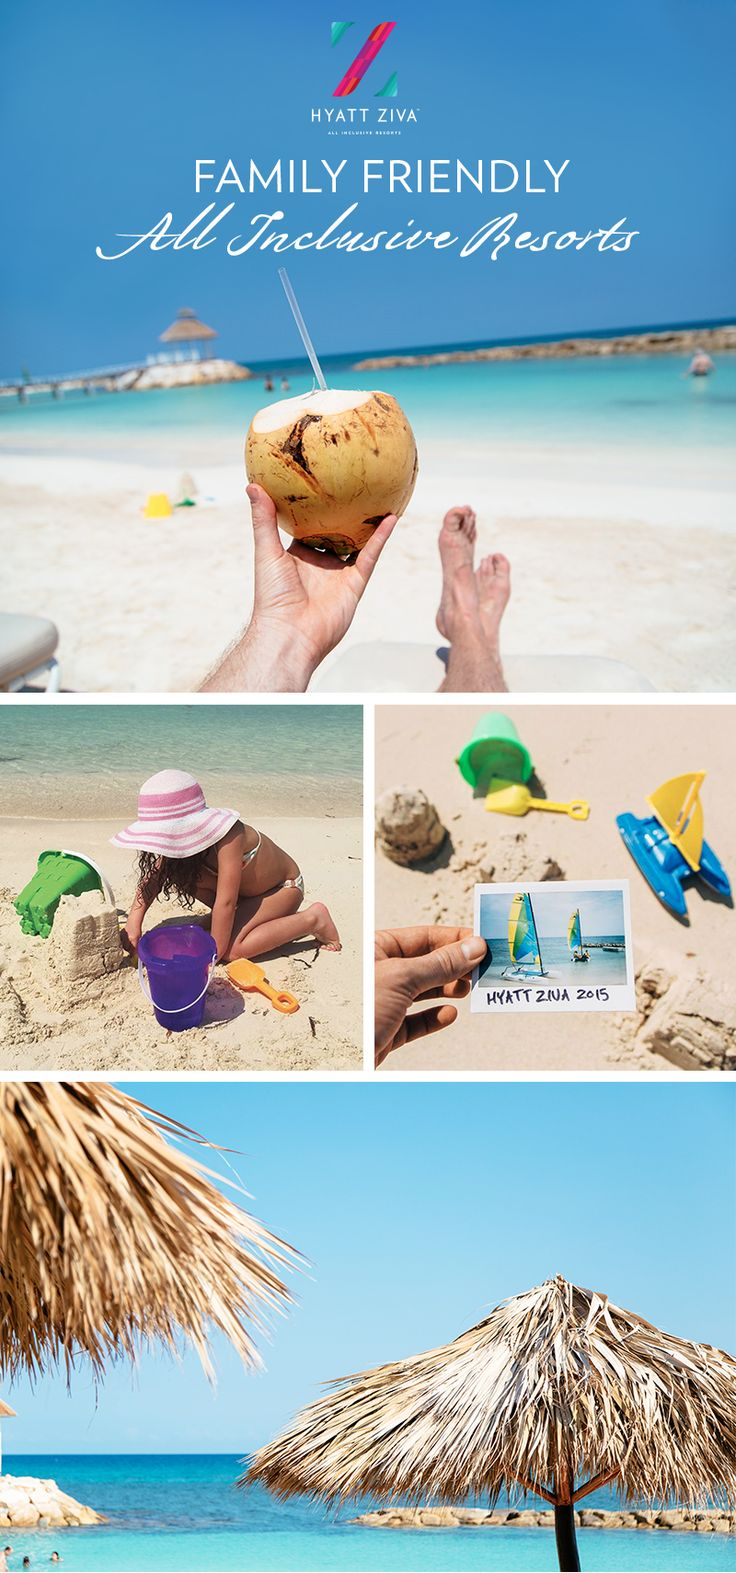 Find something for everyone in the family when you stay at Hyatt Ziva All Inclusive Resorts in Mexico and the Caribbean.